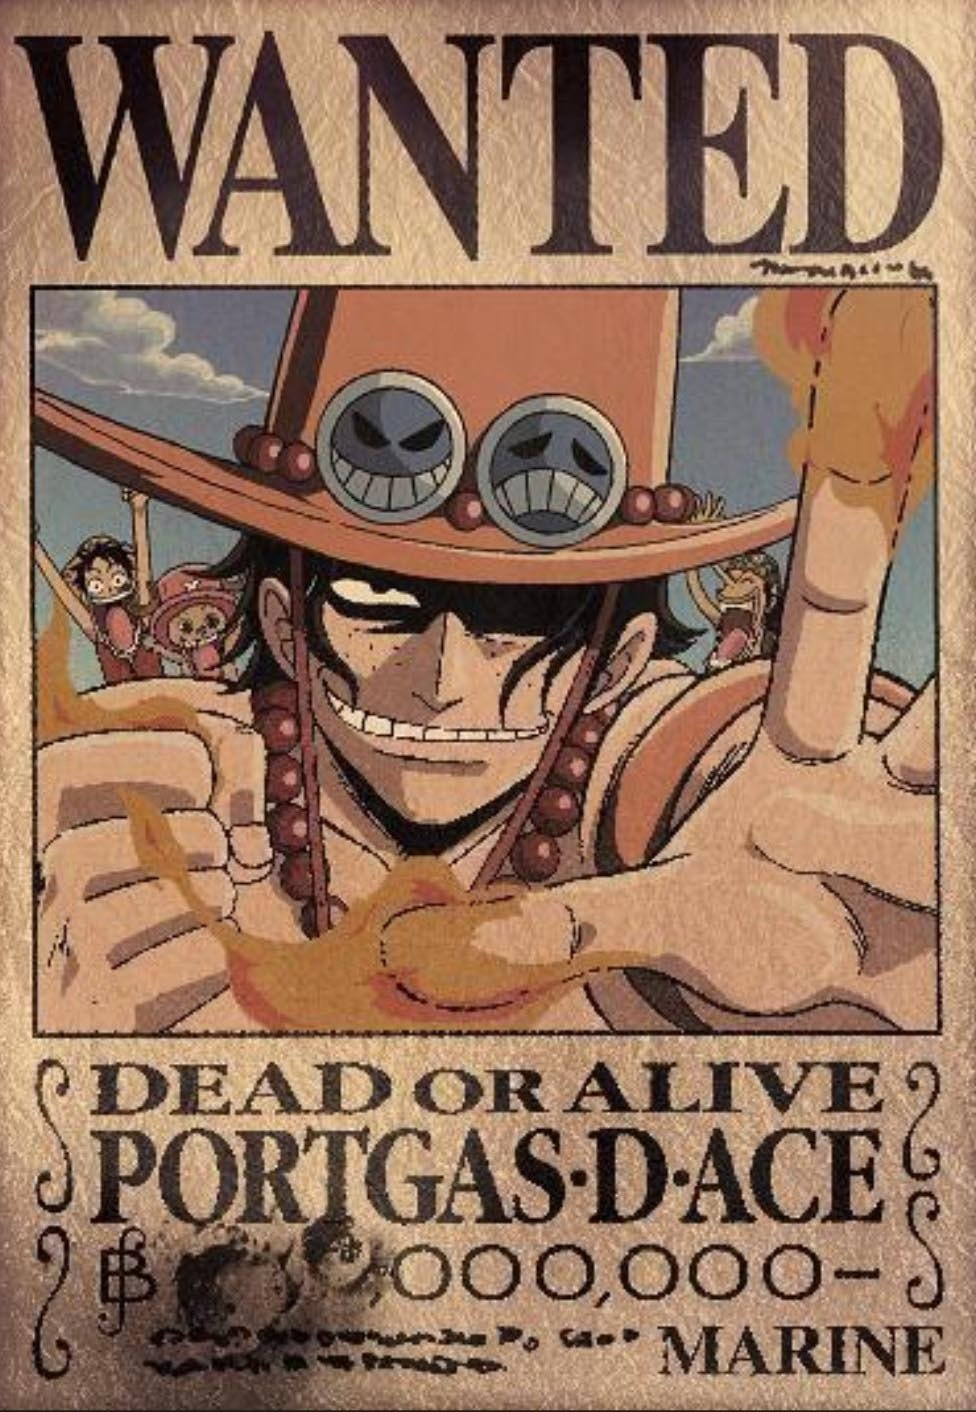 One Piece Wanted Posters Tattoo original Wallpaper E Piece Wanted